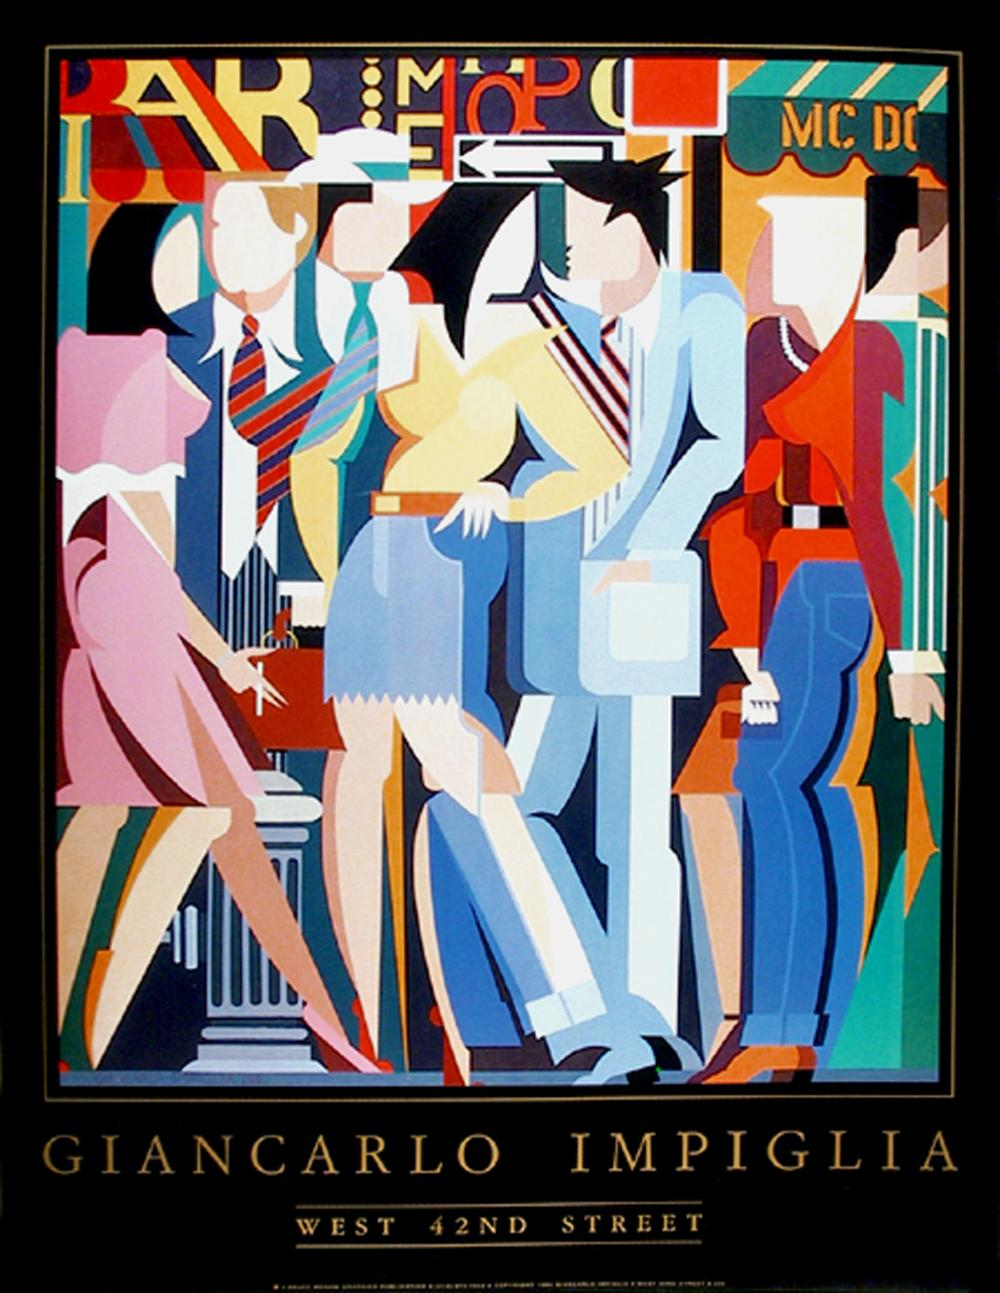 Giancarlo Impiglia, West 42nd Street, Poster